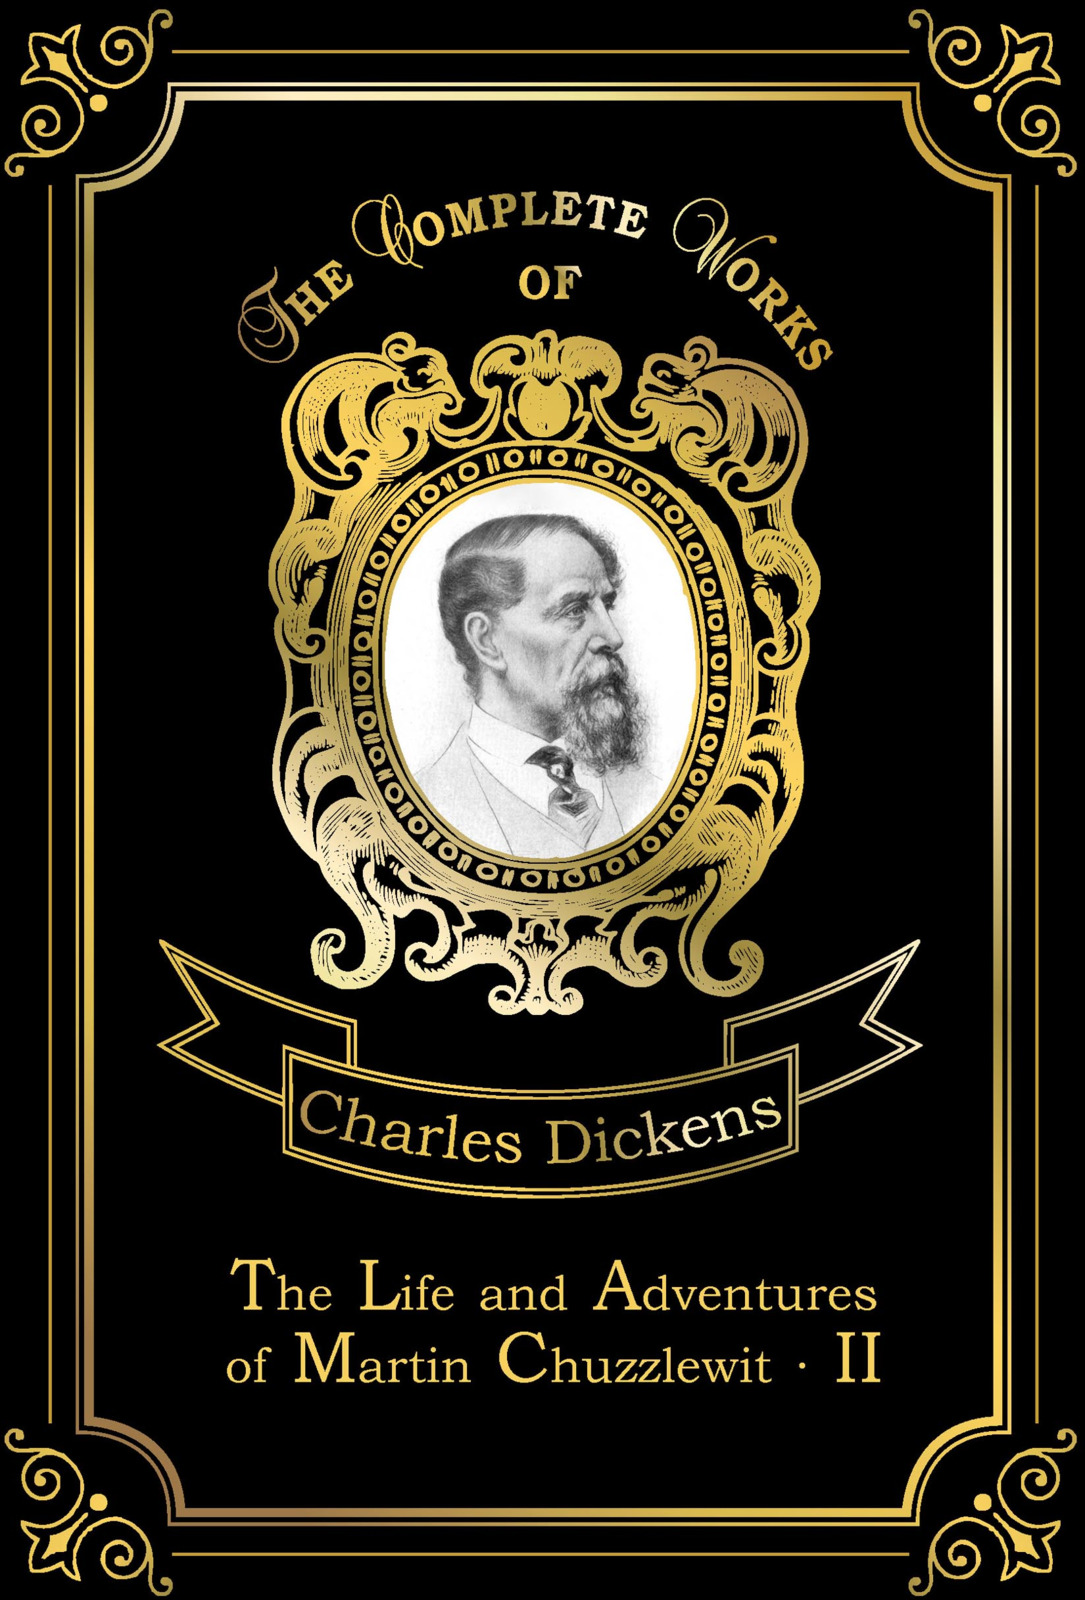 Charles Dickens The Life and Adventures of Martin Chuzzlewit II fey monterrey